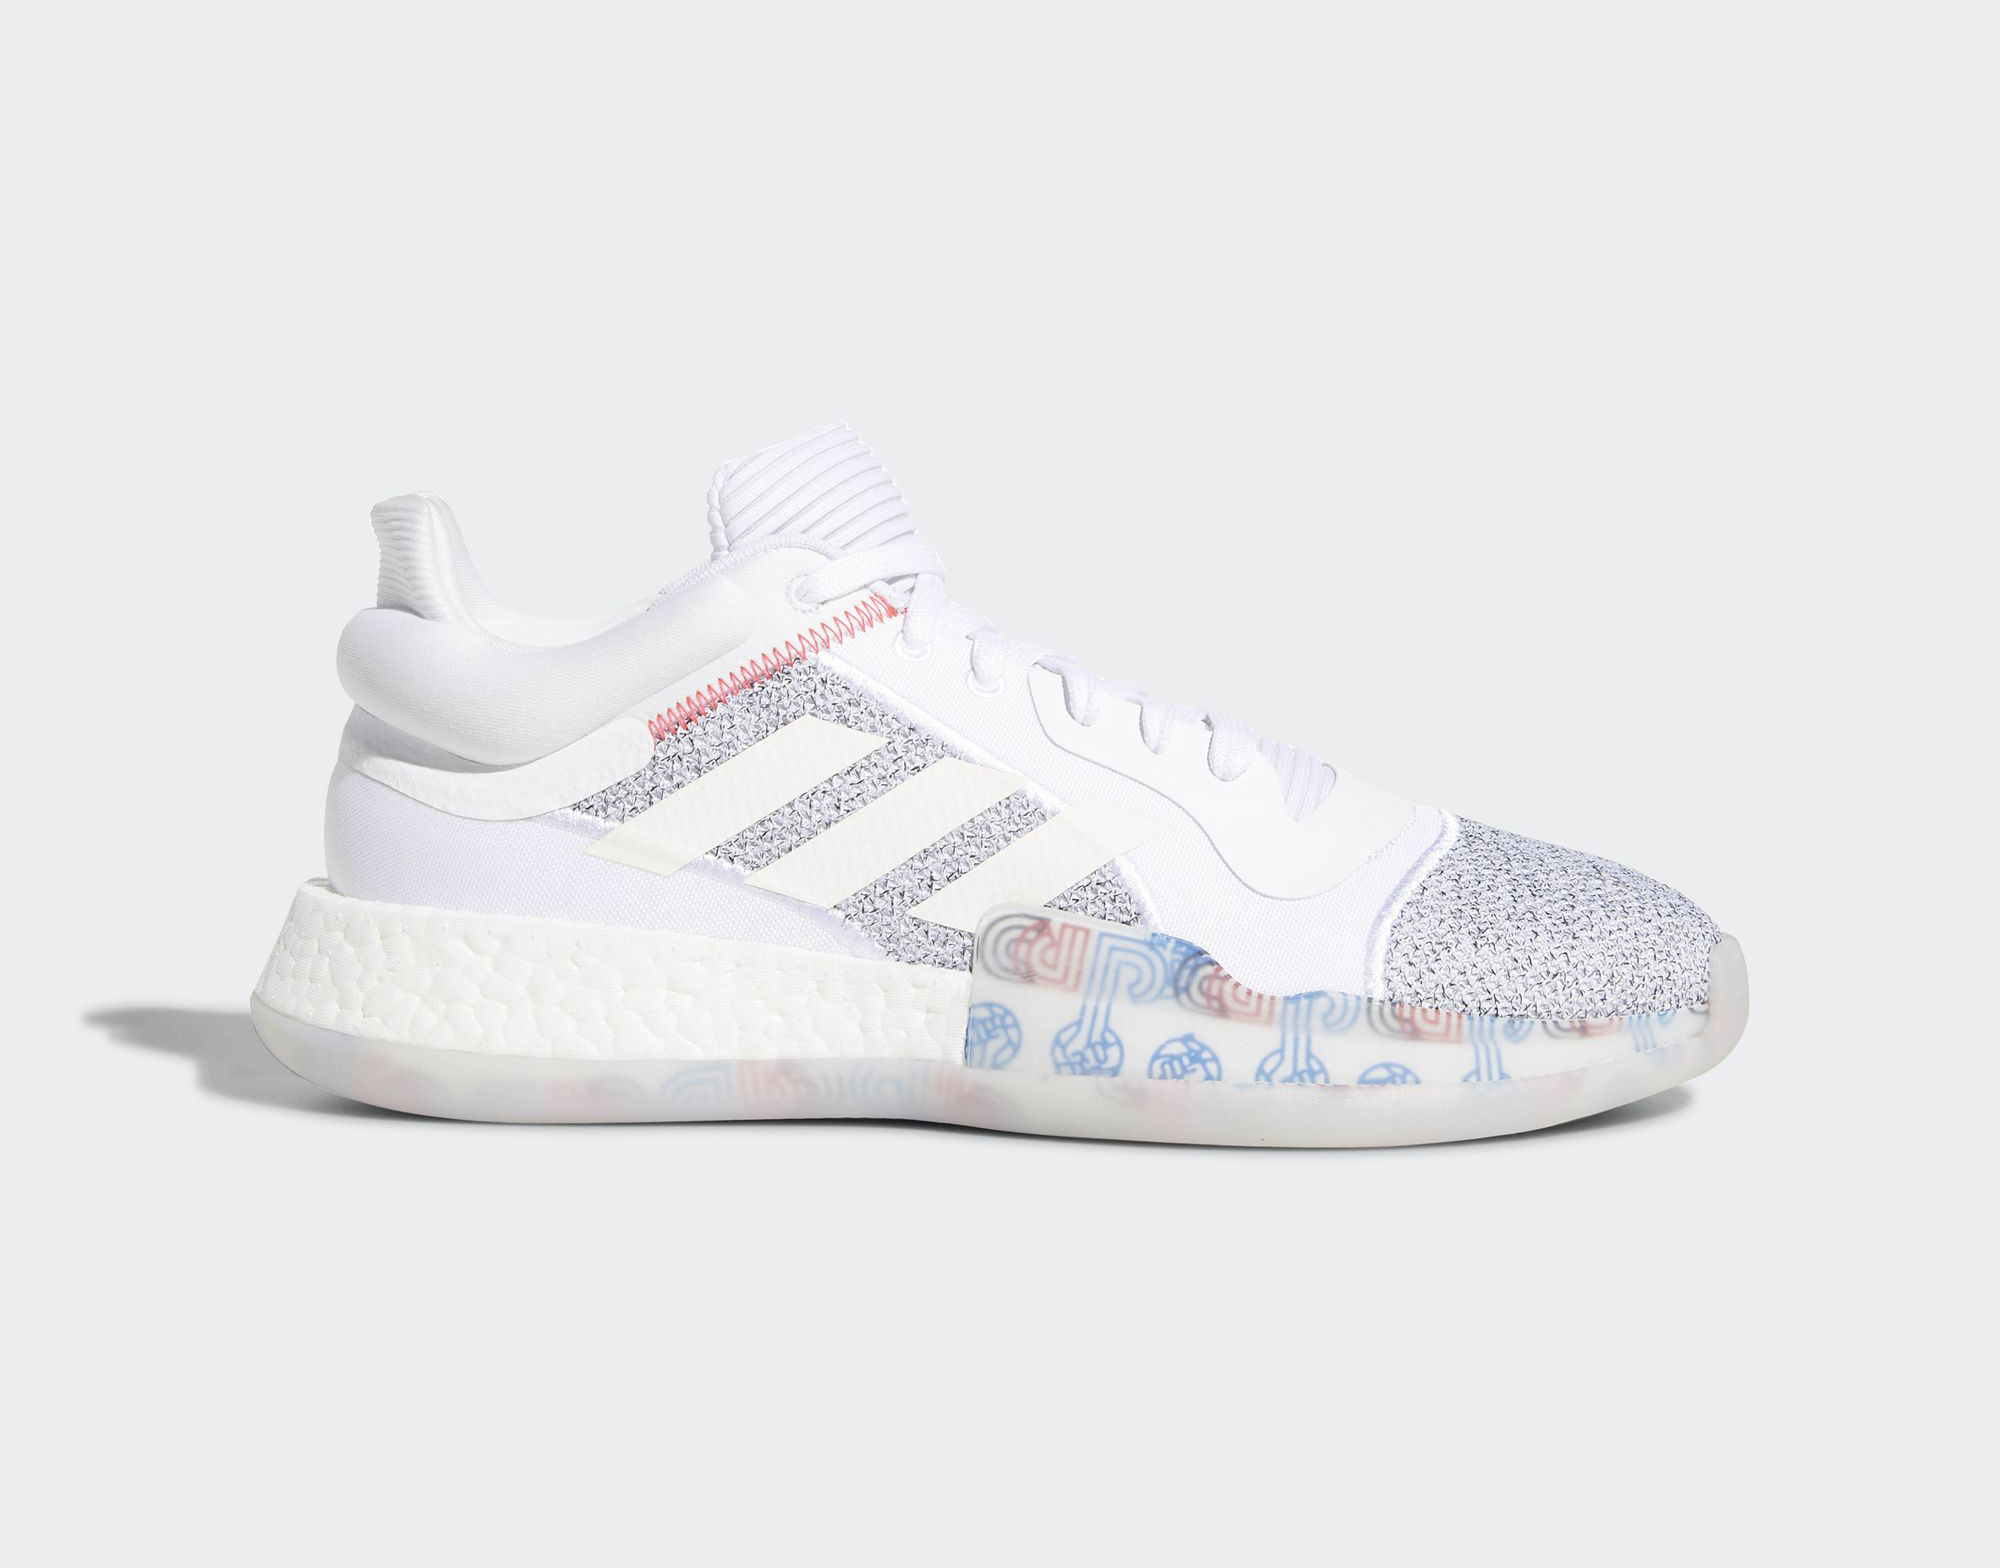 730382c176c1c Of Note Not Every Colorway Releasing Has Been Featured Below Theyre Going  All In With This Shoe